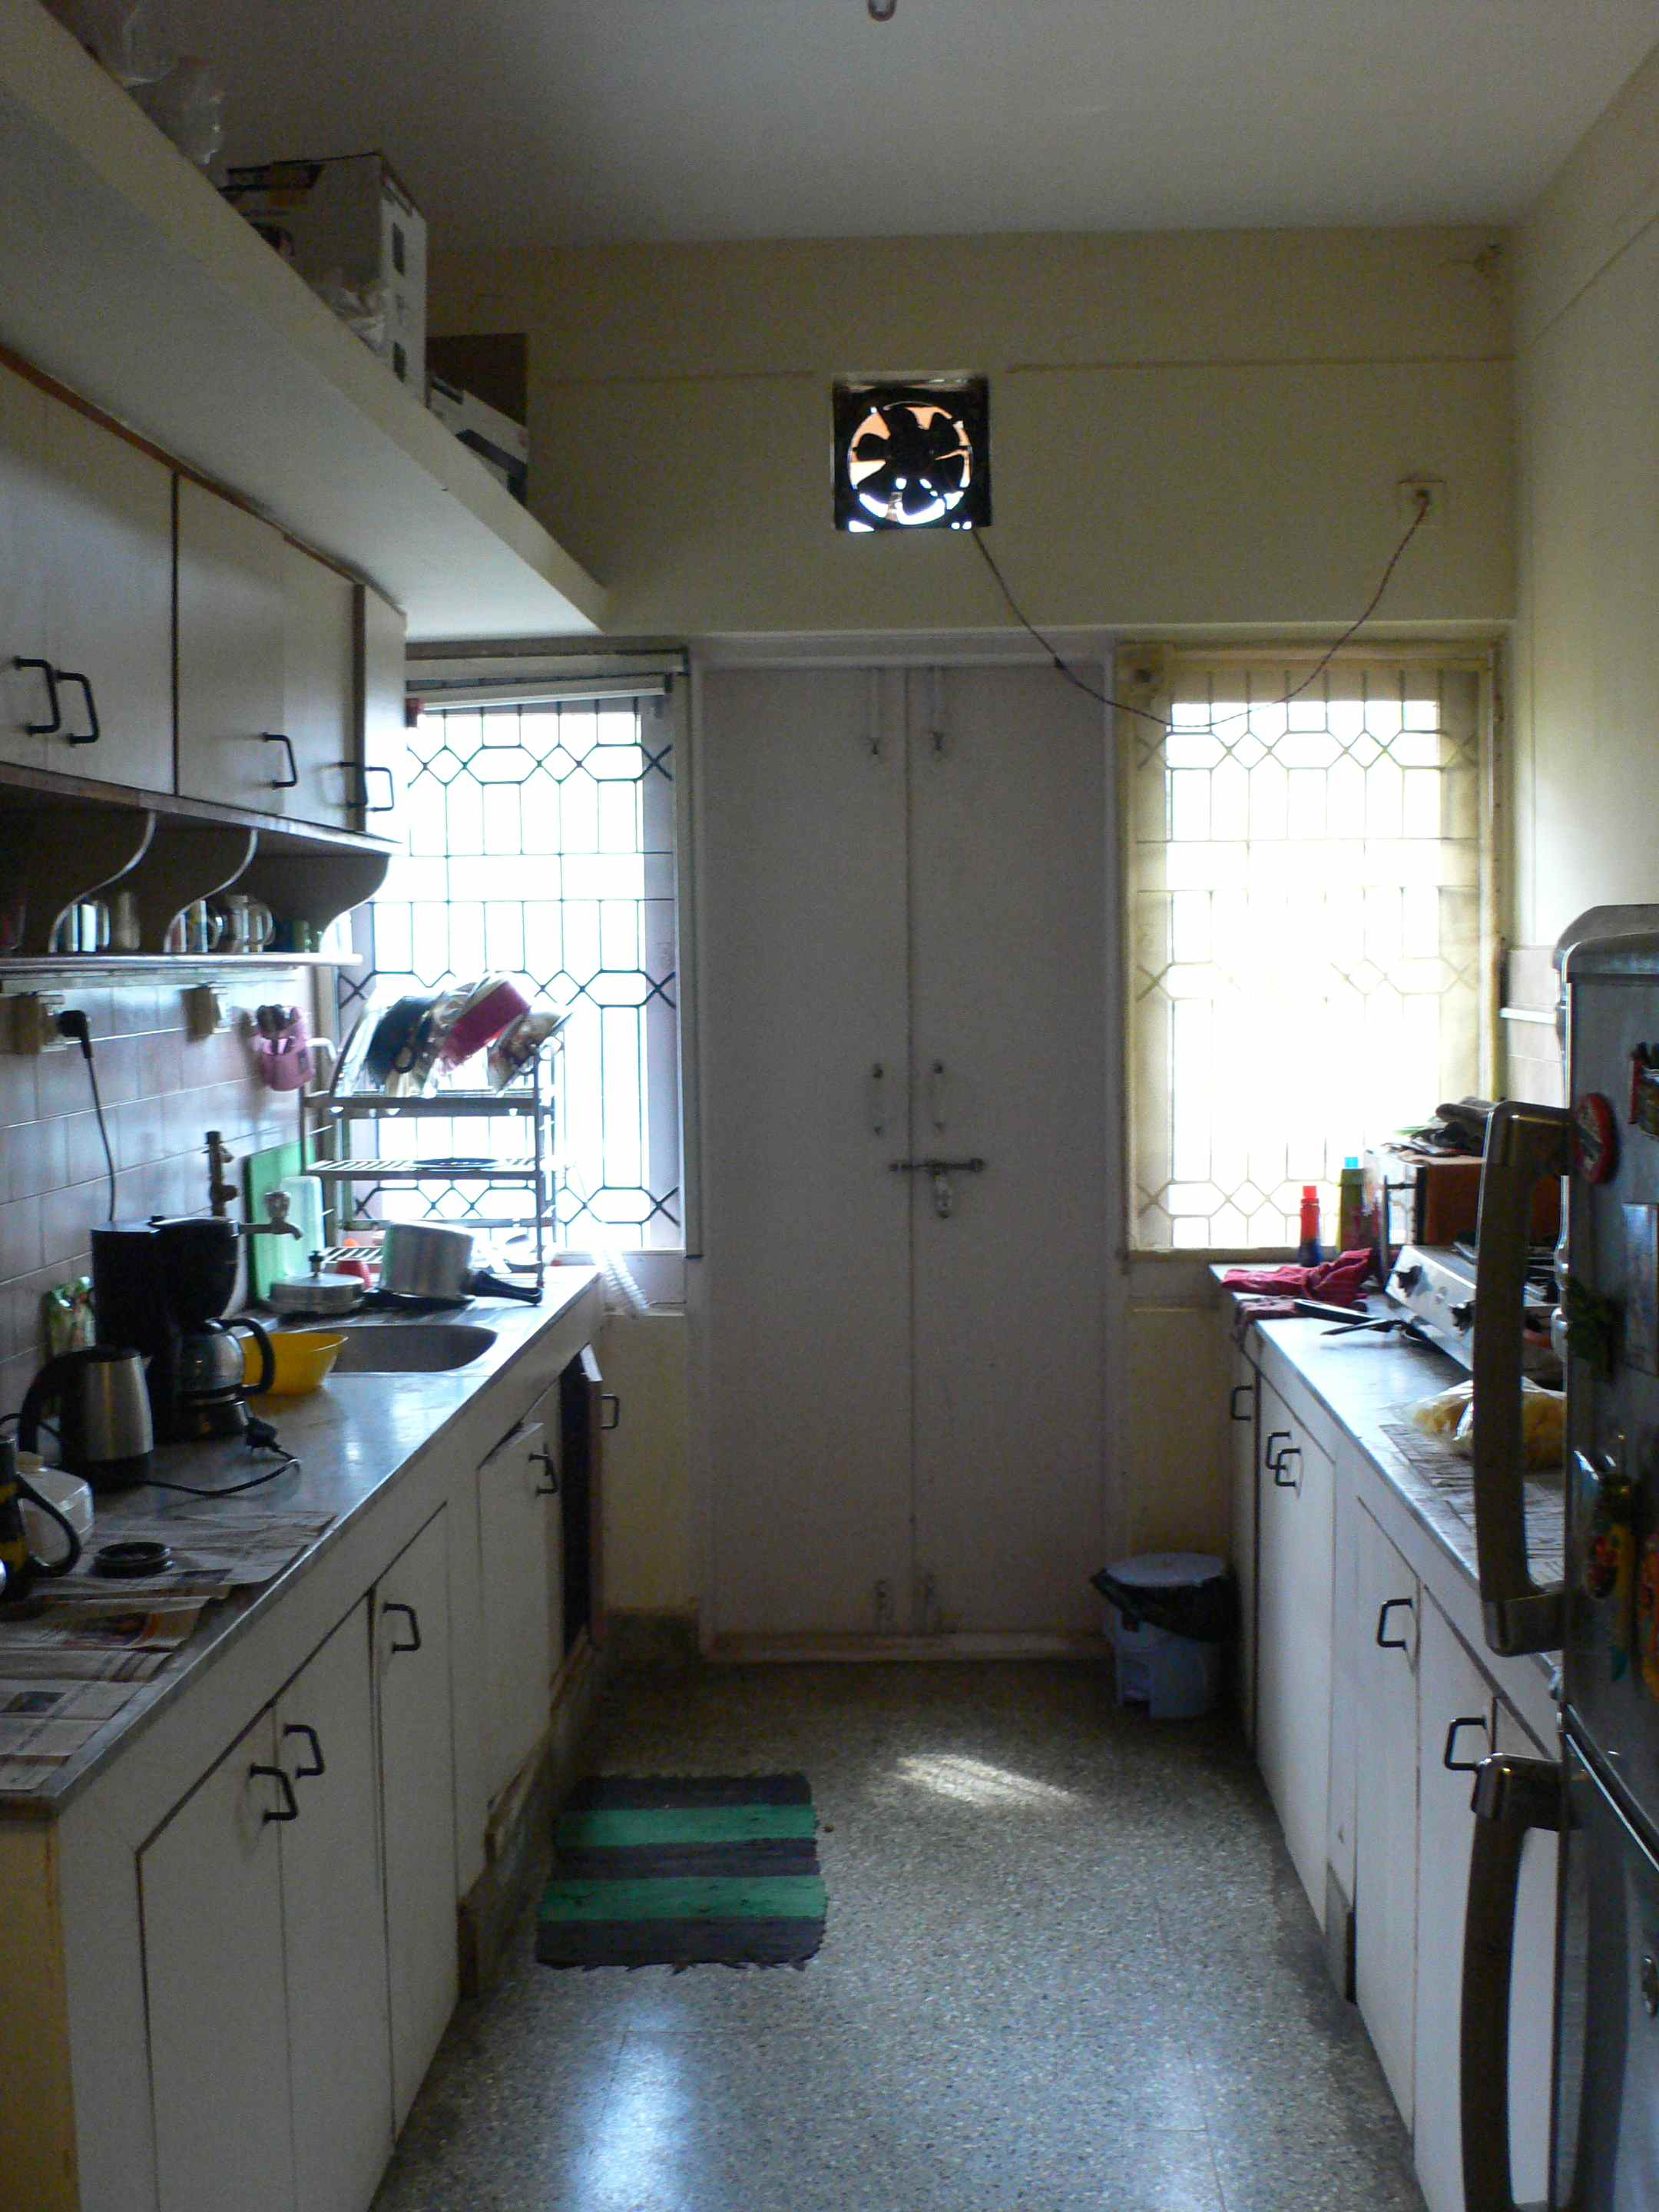 This is the kitchen